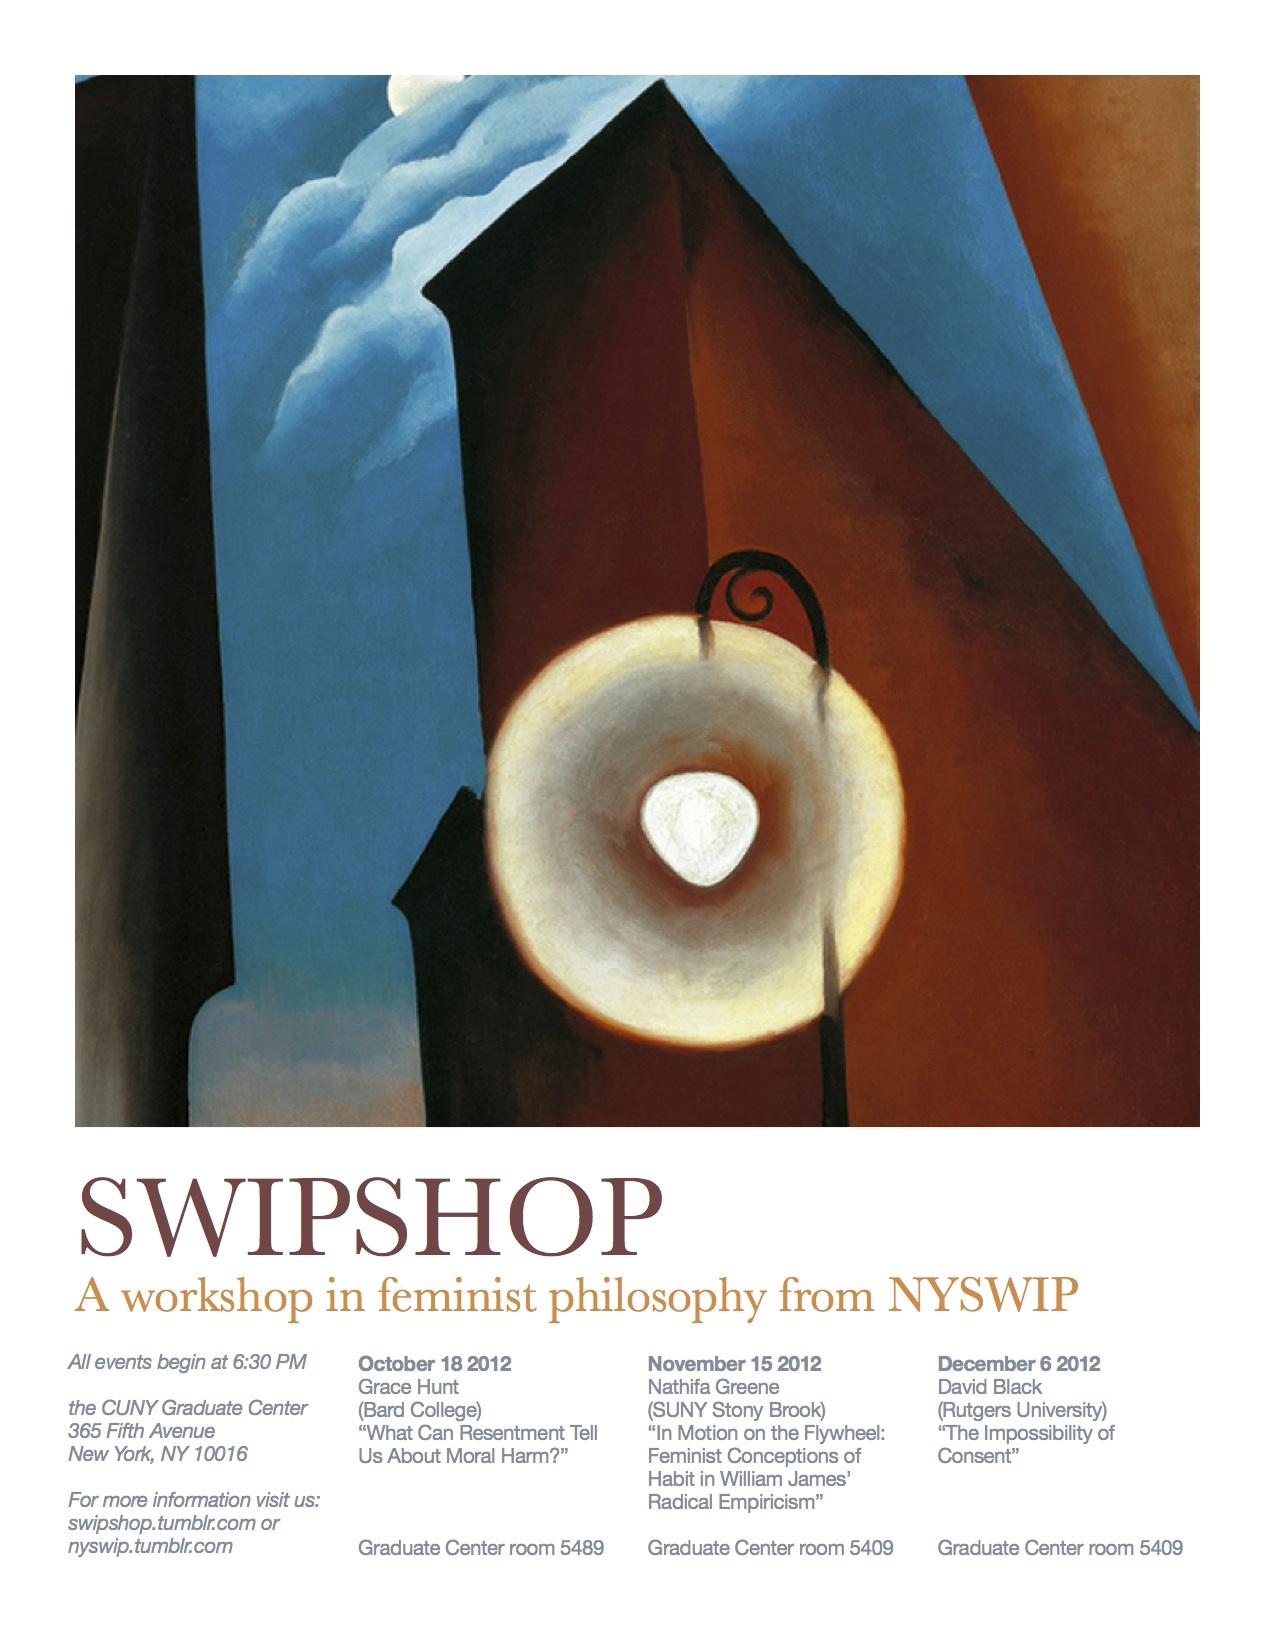 SWIPShop Feminist Philosophy Workshop